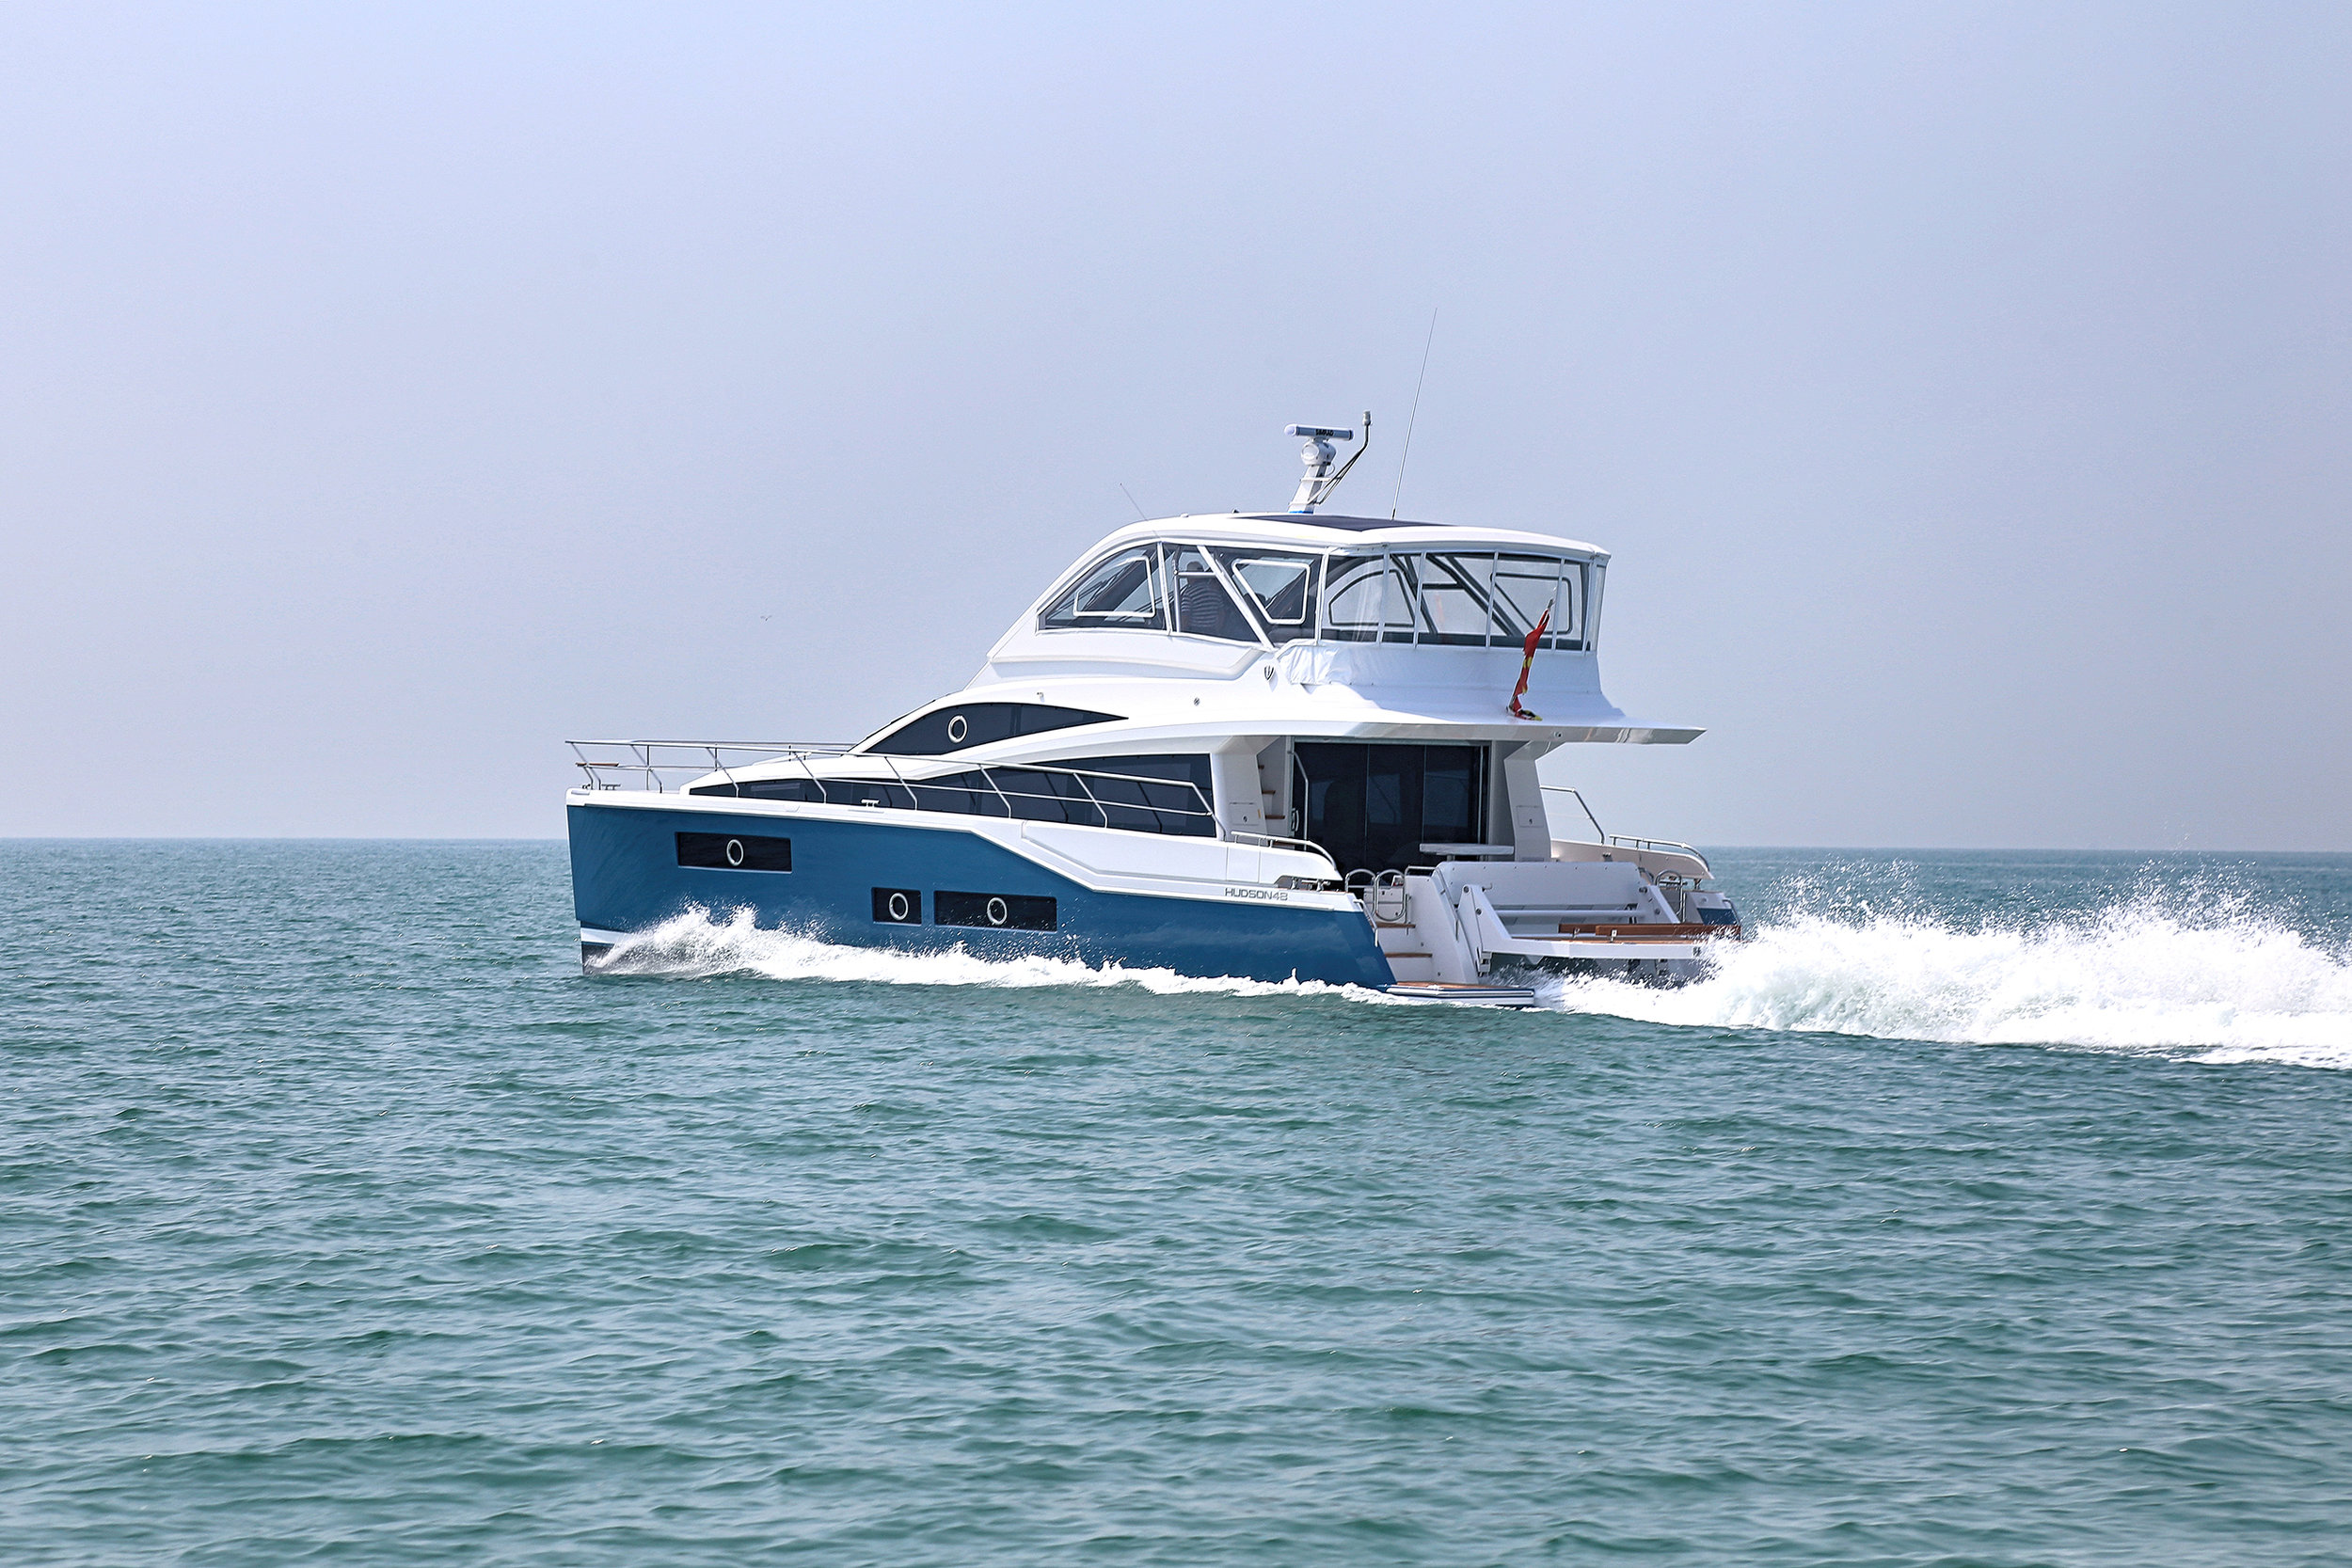 HPC48-06, owner's version, three cabins, with fully enclosed flybridge, and upper and lower helm stations.